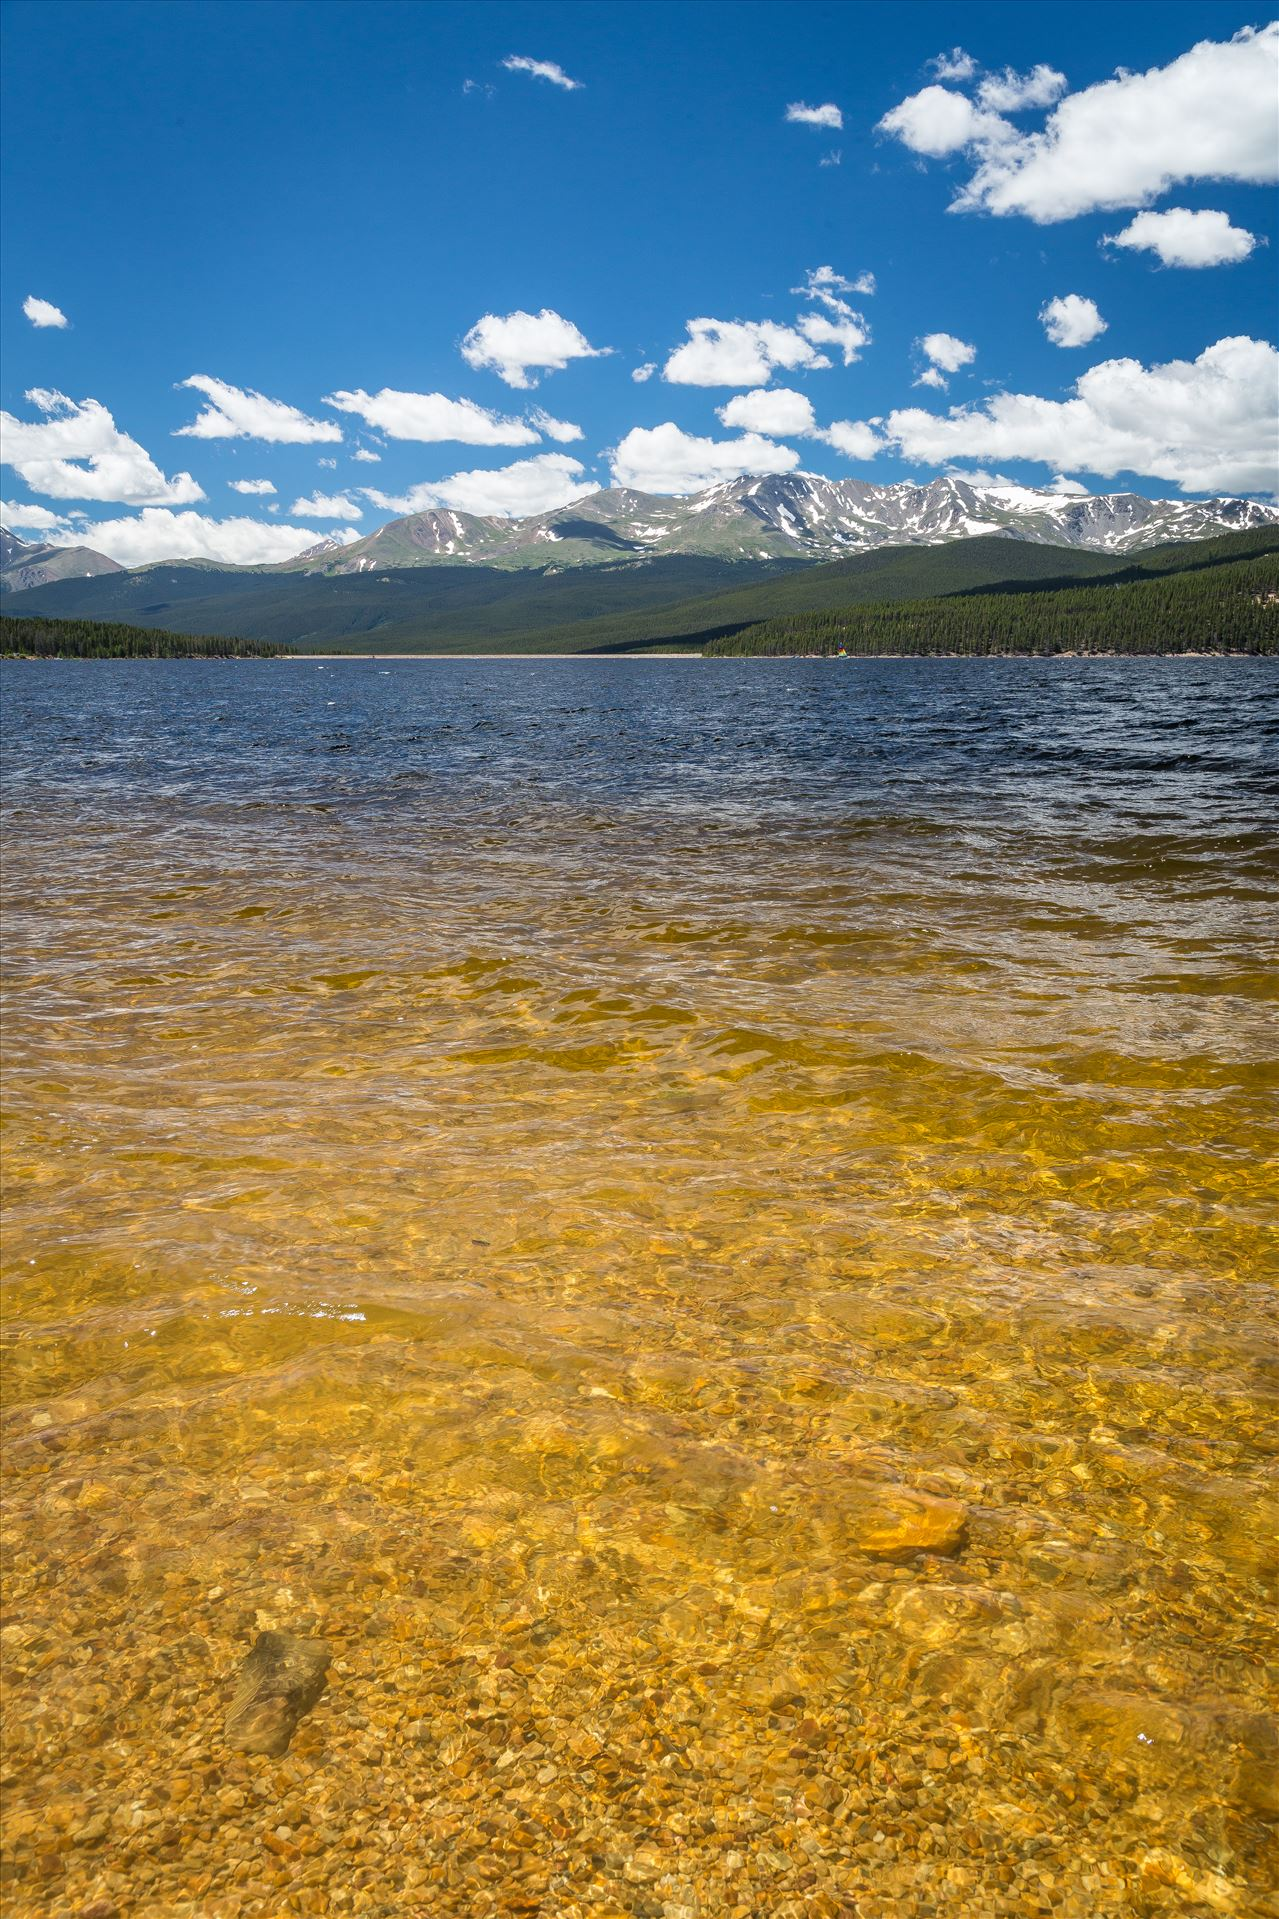 Clear Water at Turquoise Lake - Summer at Turquoise Lake, Leadville, Colorado. by D Scott Smith